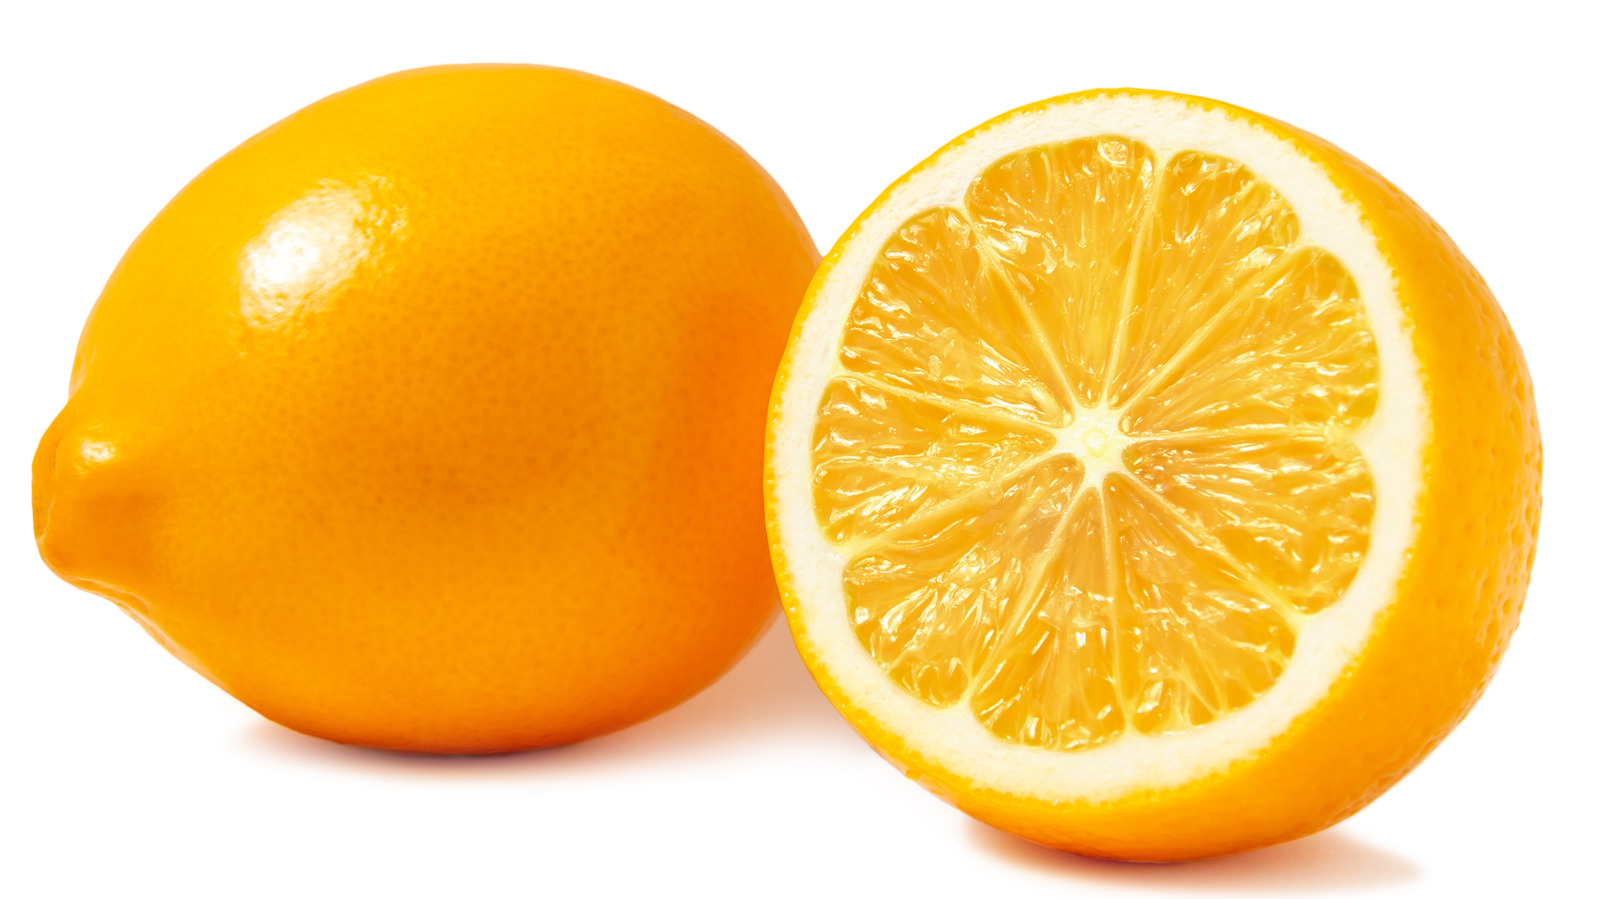 The Real Difference Between Meyer Lemons And Regular Lemons